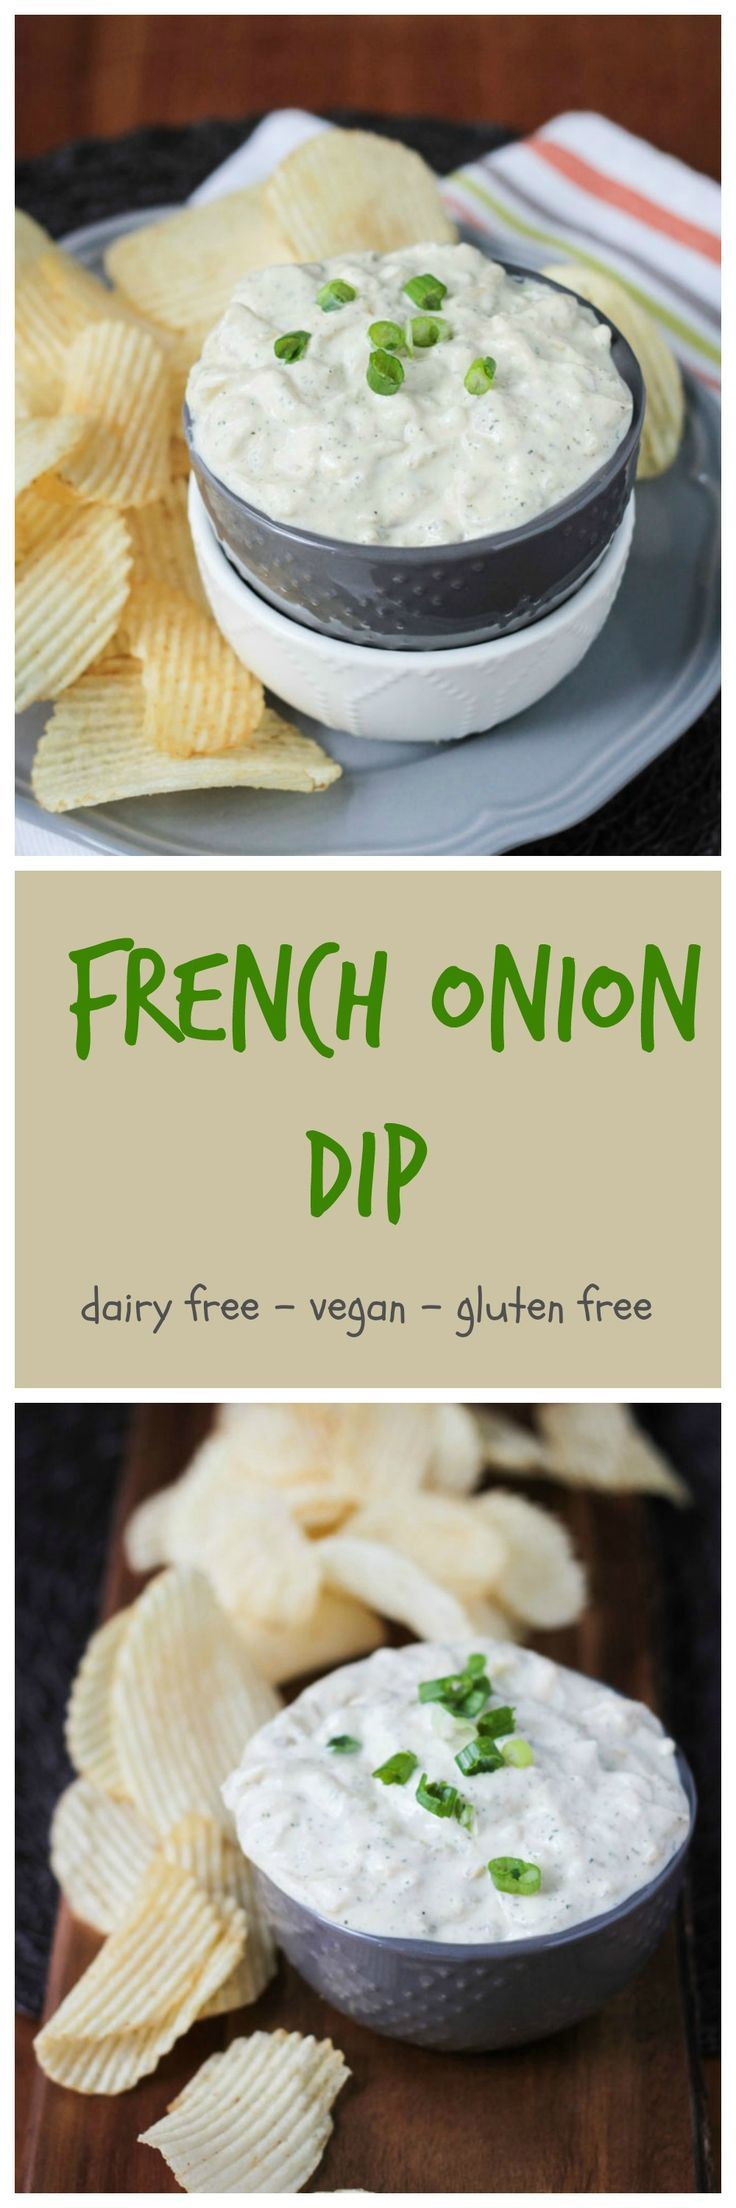 Vegan French Onion Dip with Dill Recipe Whole food